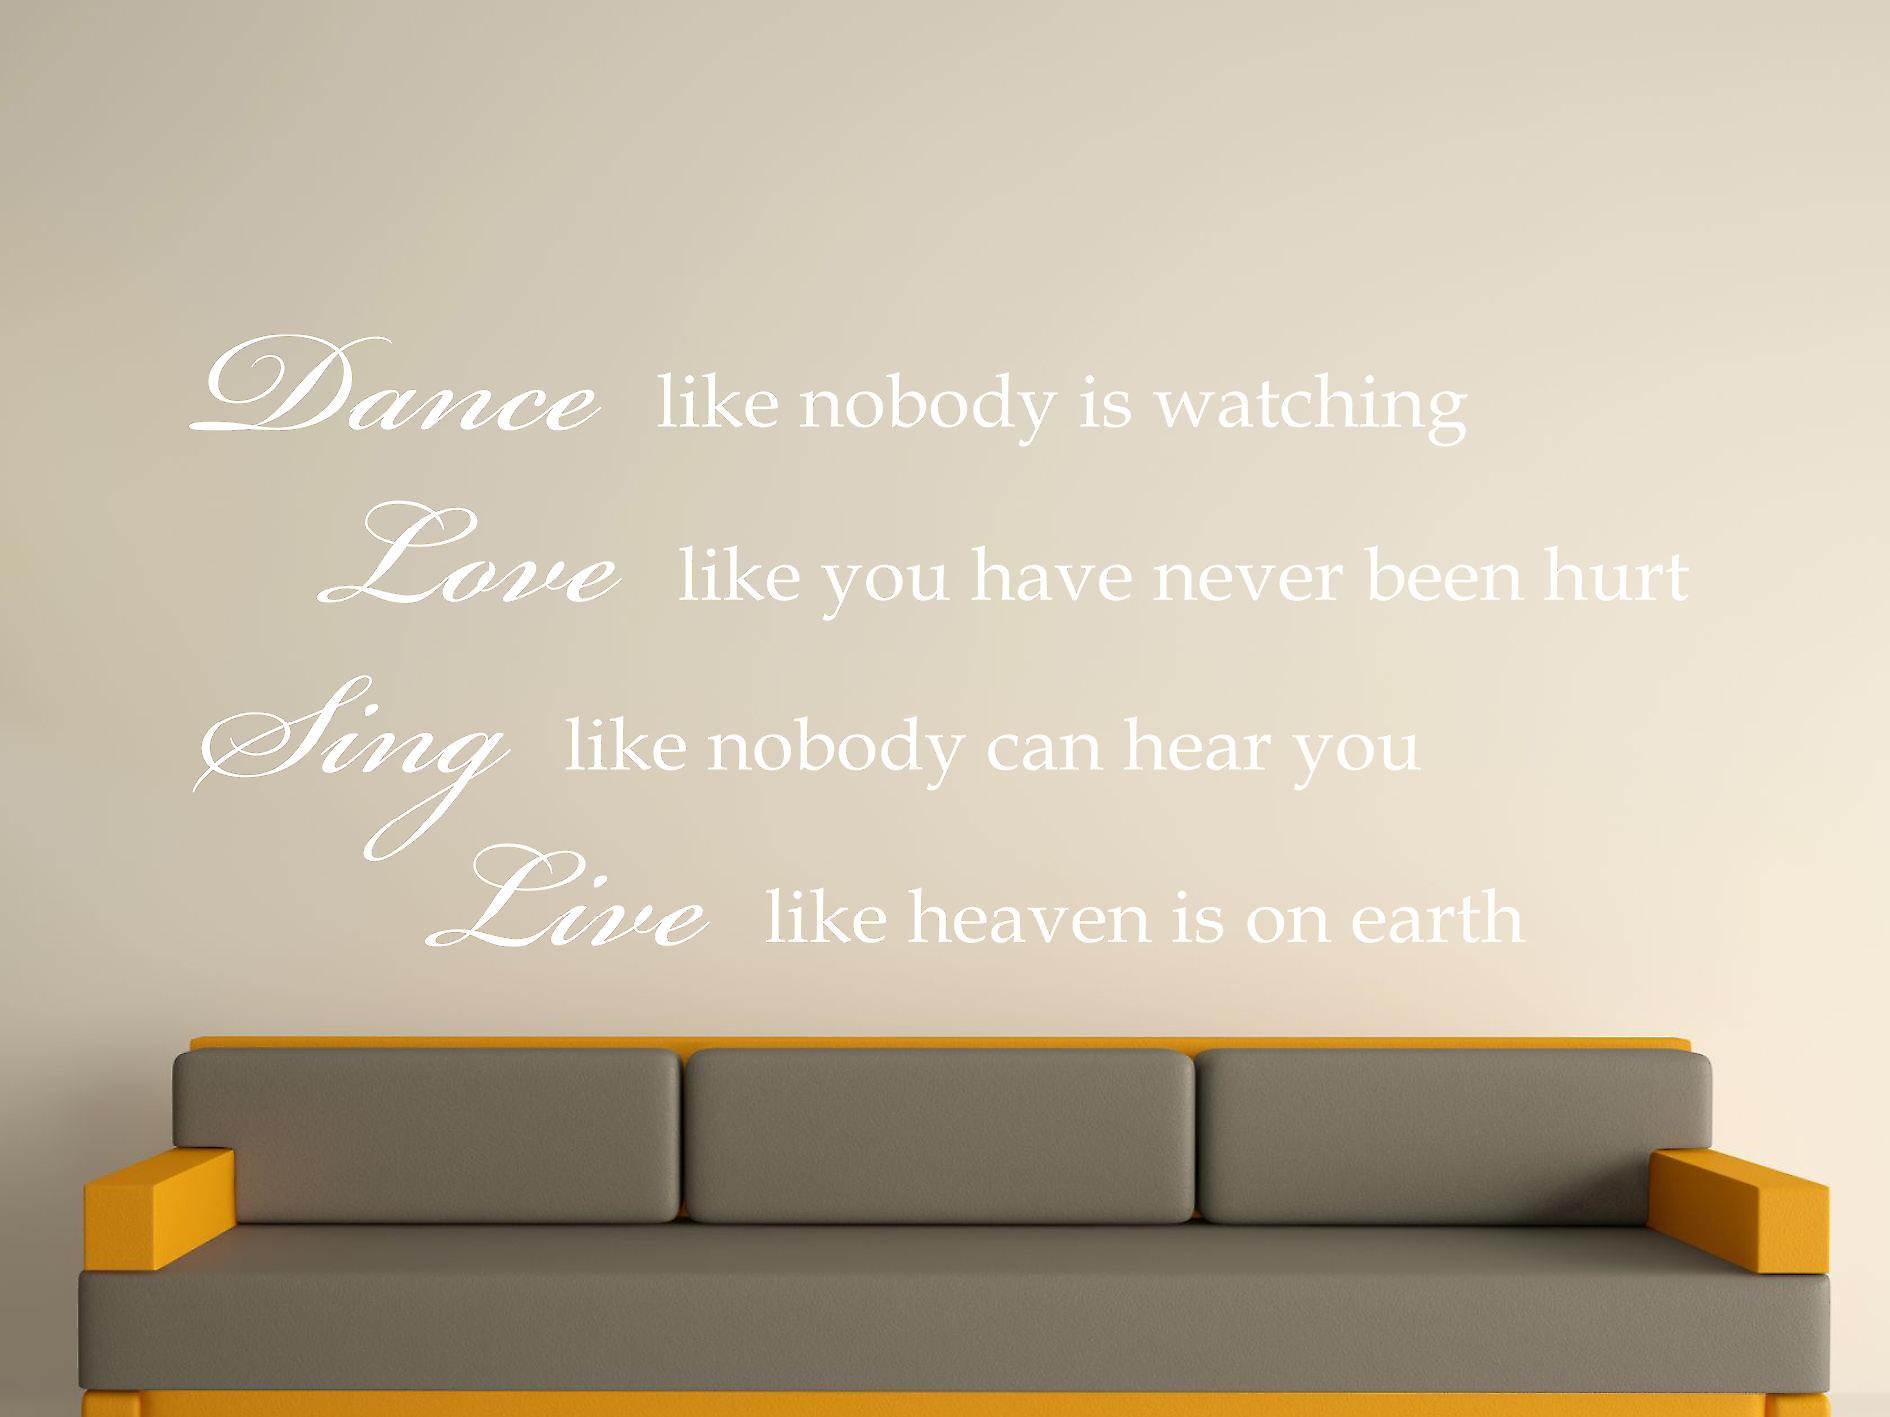 Dance Like Nobody Is Watching Wall Art Sticker - White